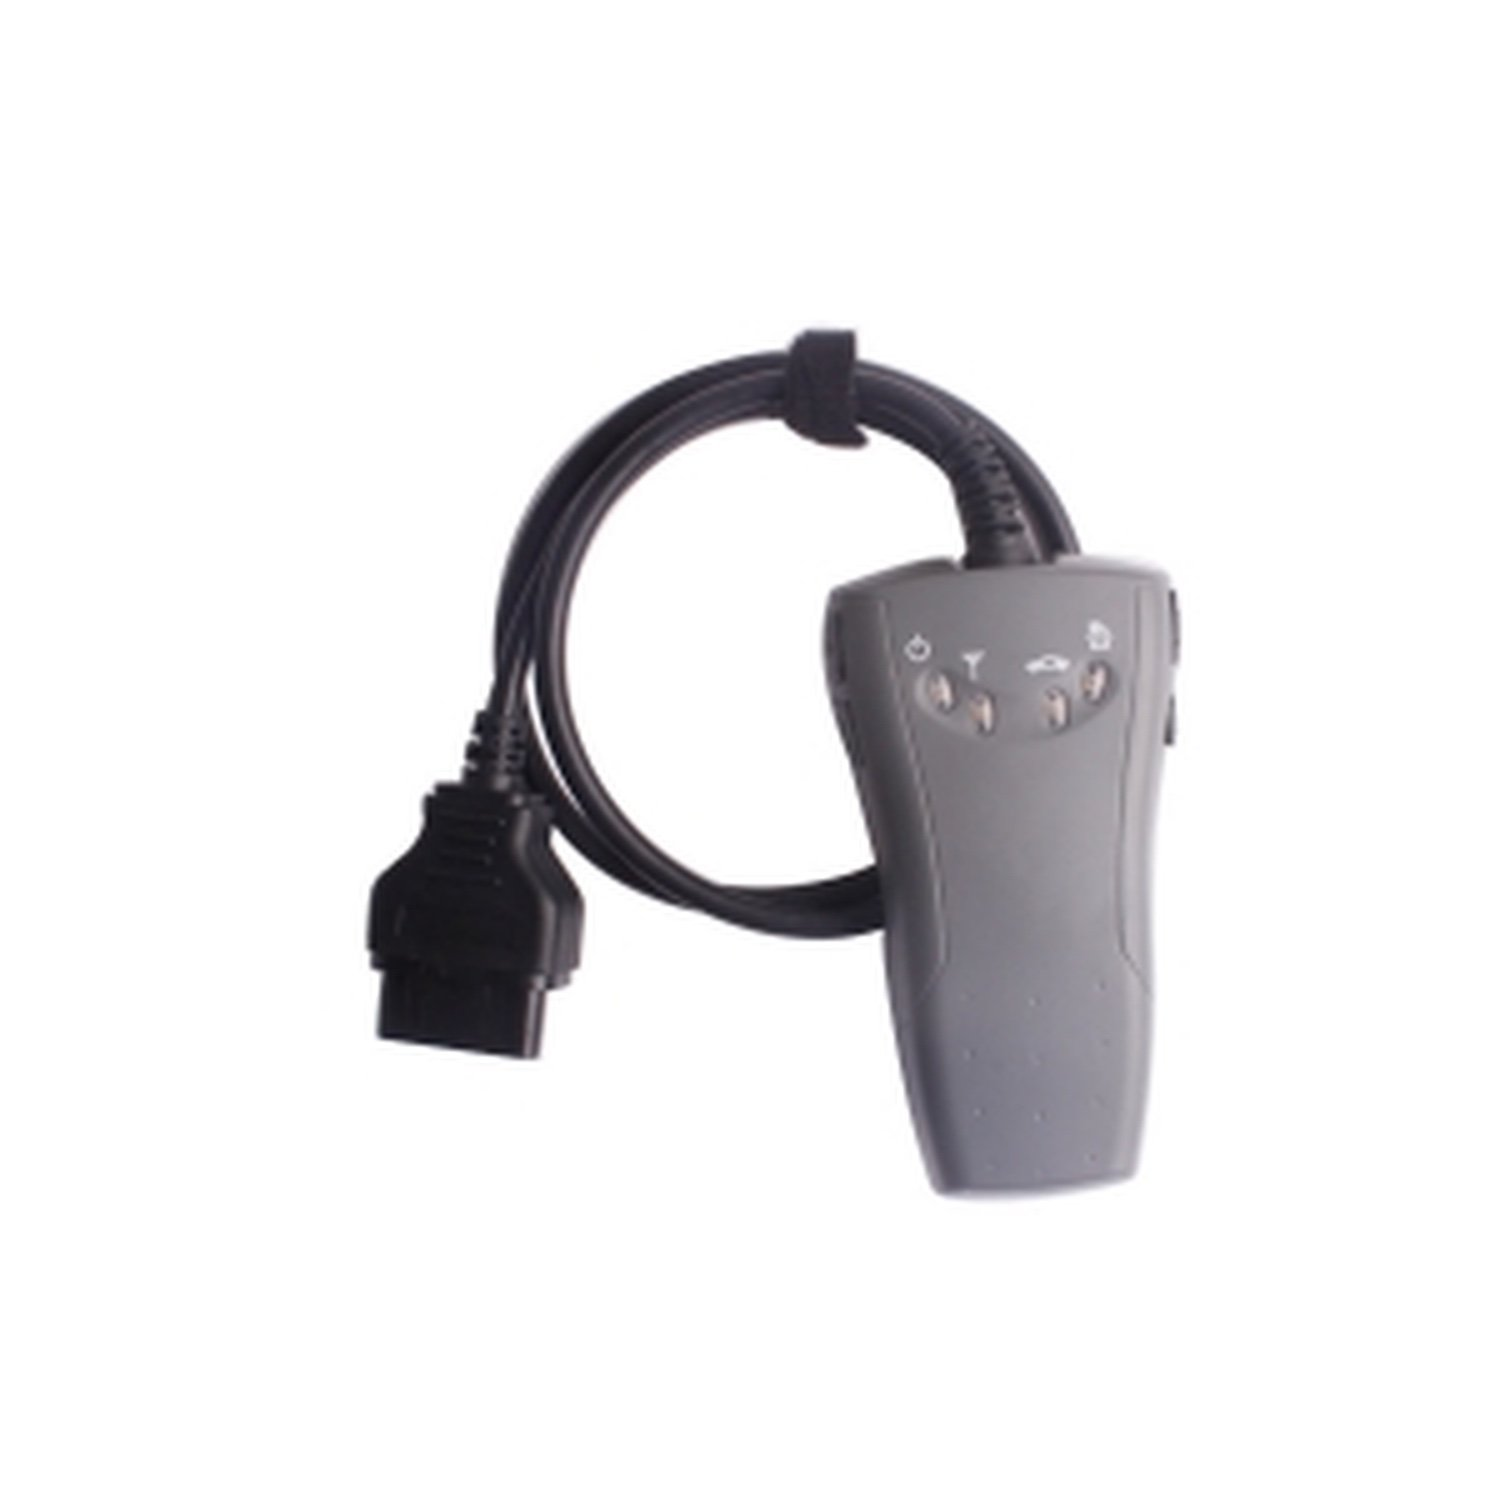 Renault CAN Clip V160 And Consult 3 III For Nissan Professional Diagnostic Tool 2 In 1